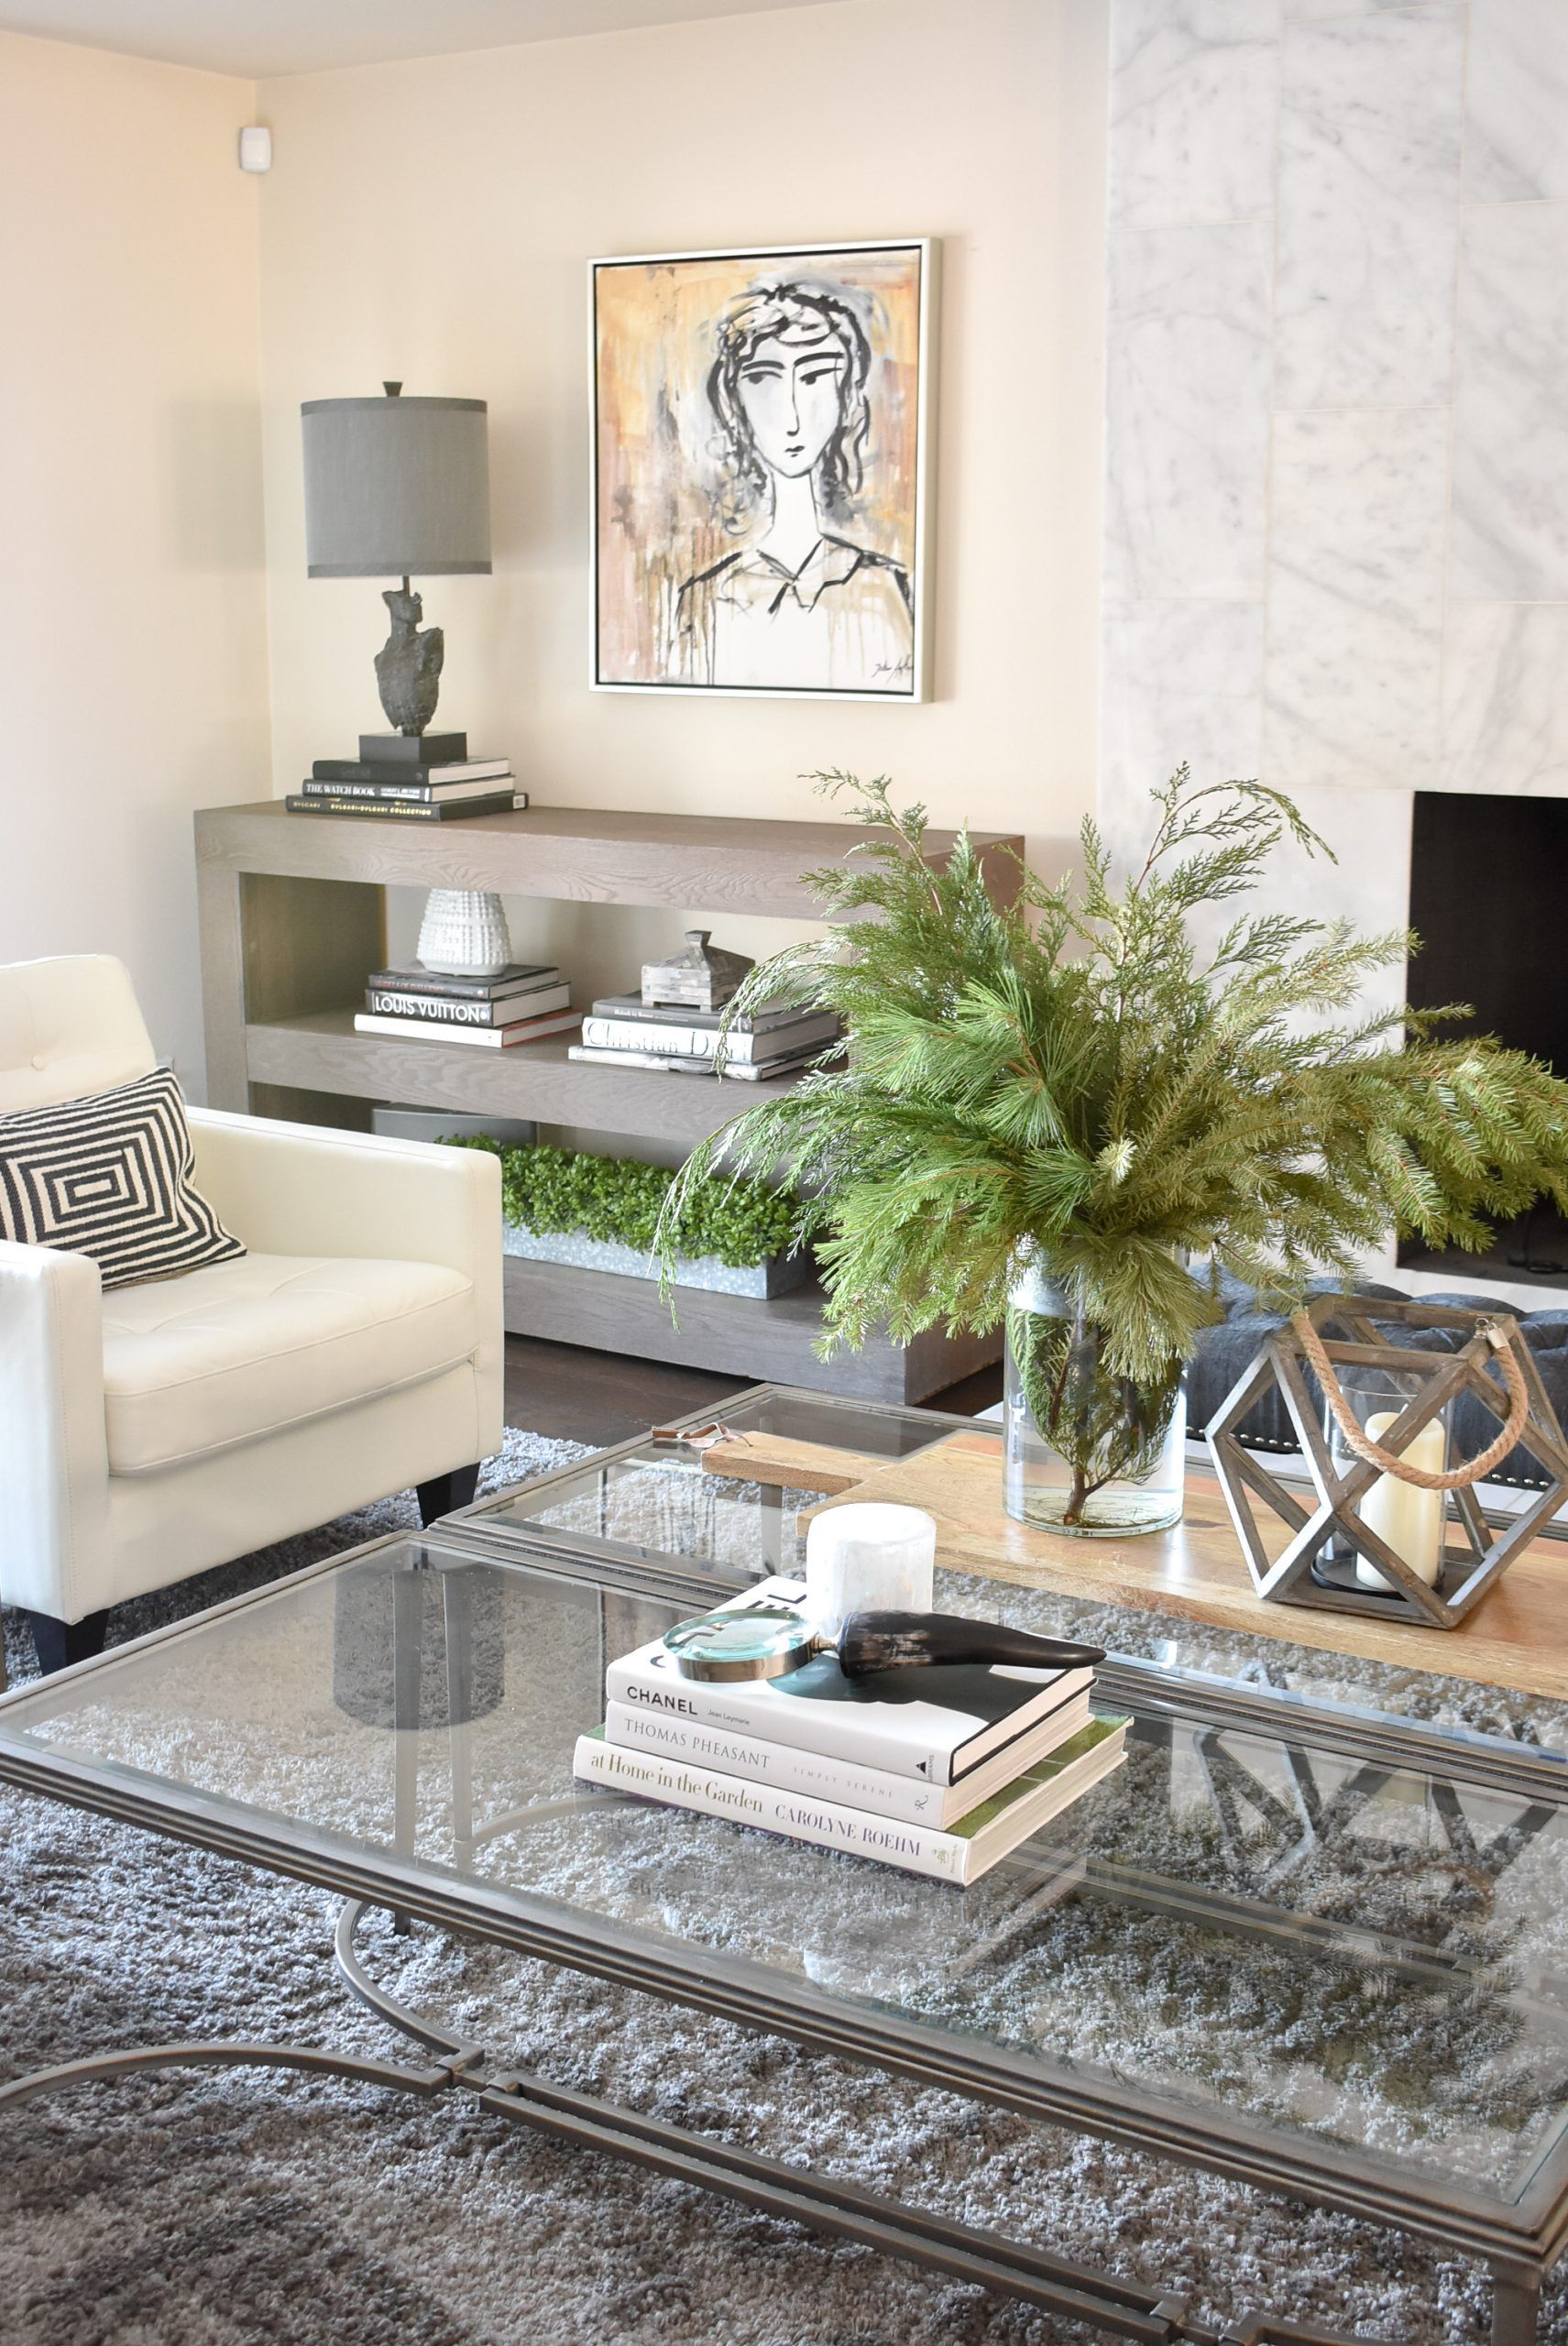 10 Designer Tips For Warm And Cozy Winter Home Decorating In 2020